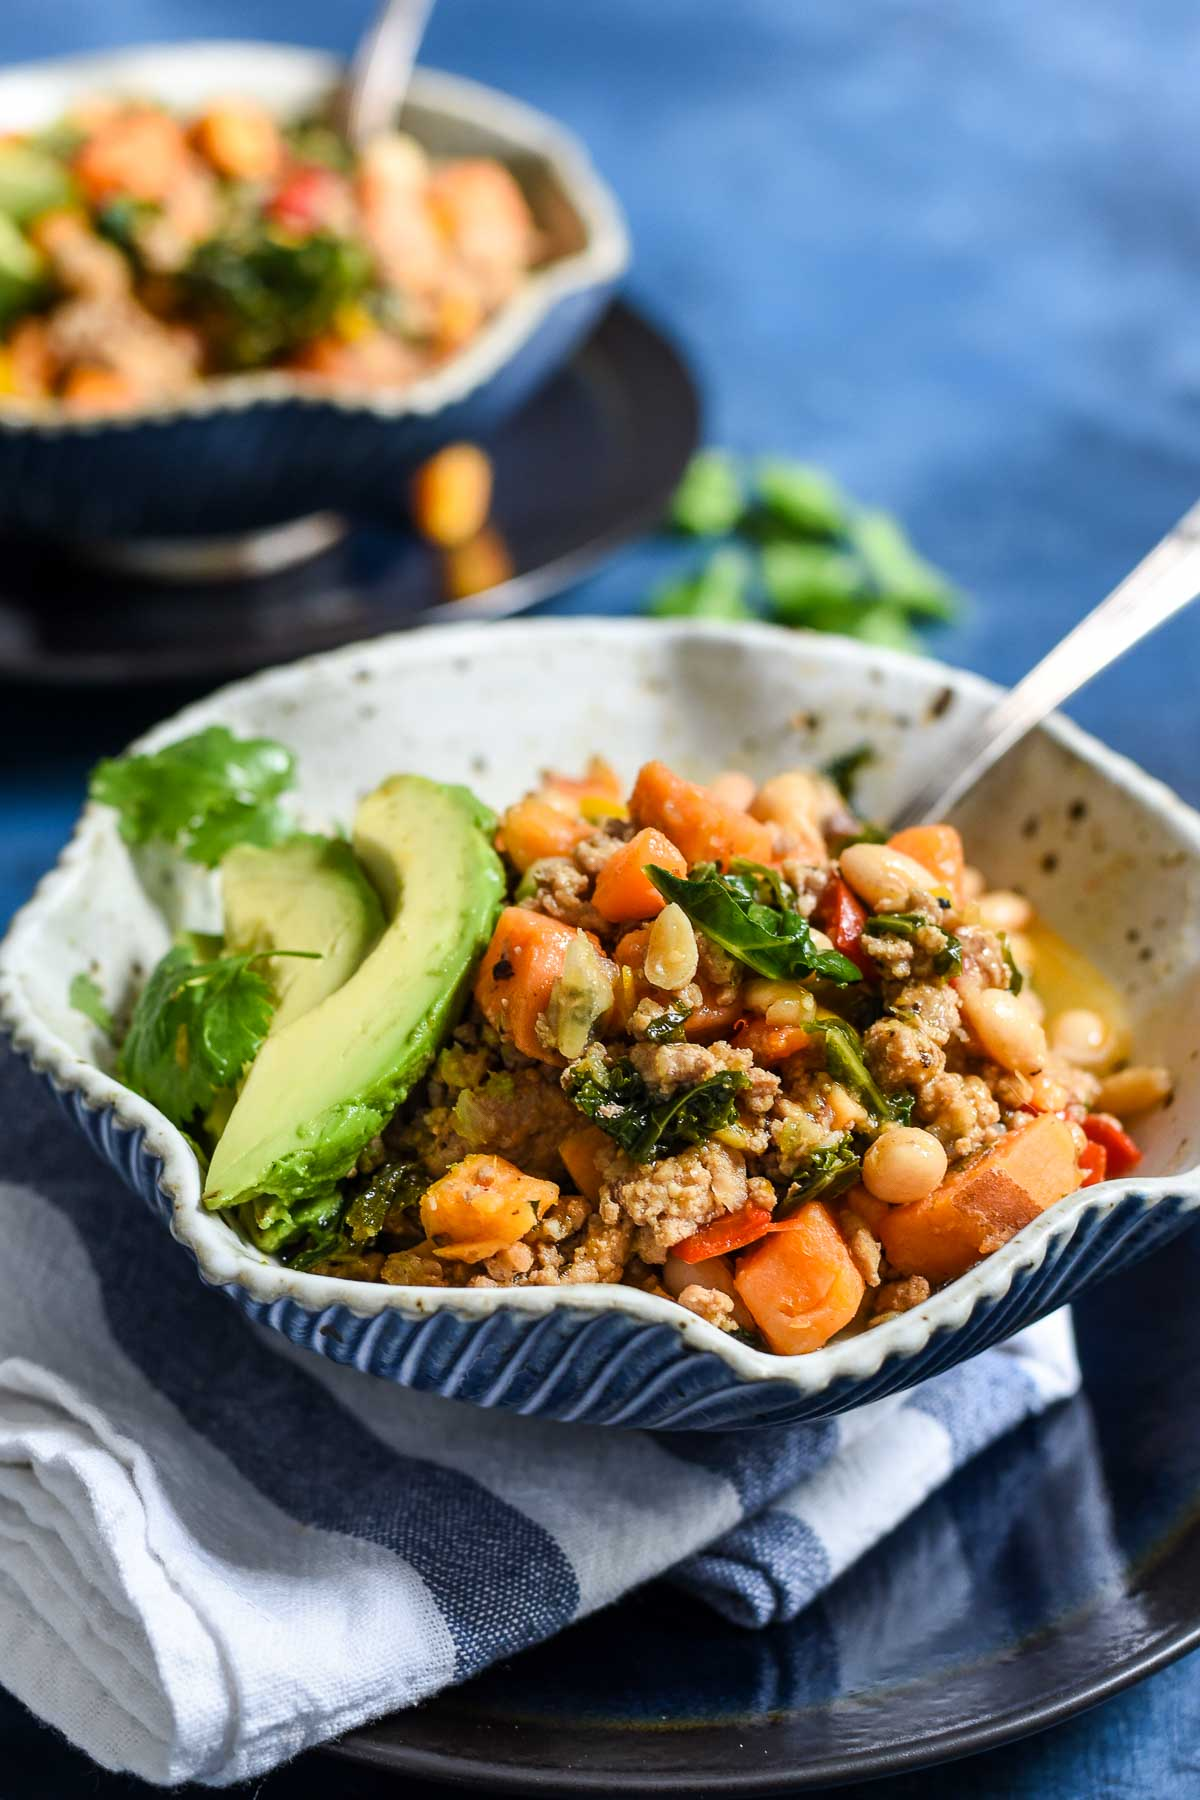 This smoky Chipotle Sweet Potato Turkey Chili is a healthy and hearty meal you'll want to eat all week. #glutenfree #dairyfree